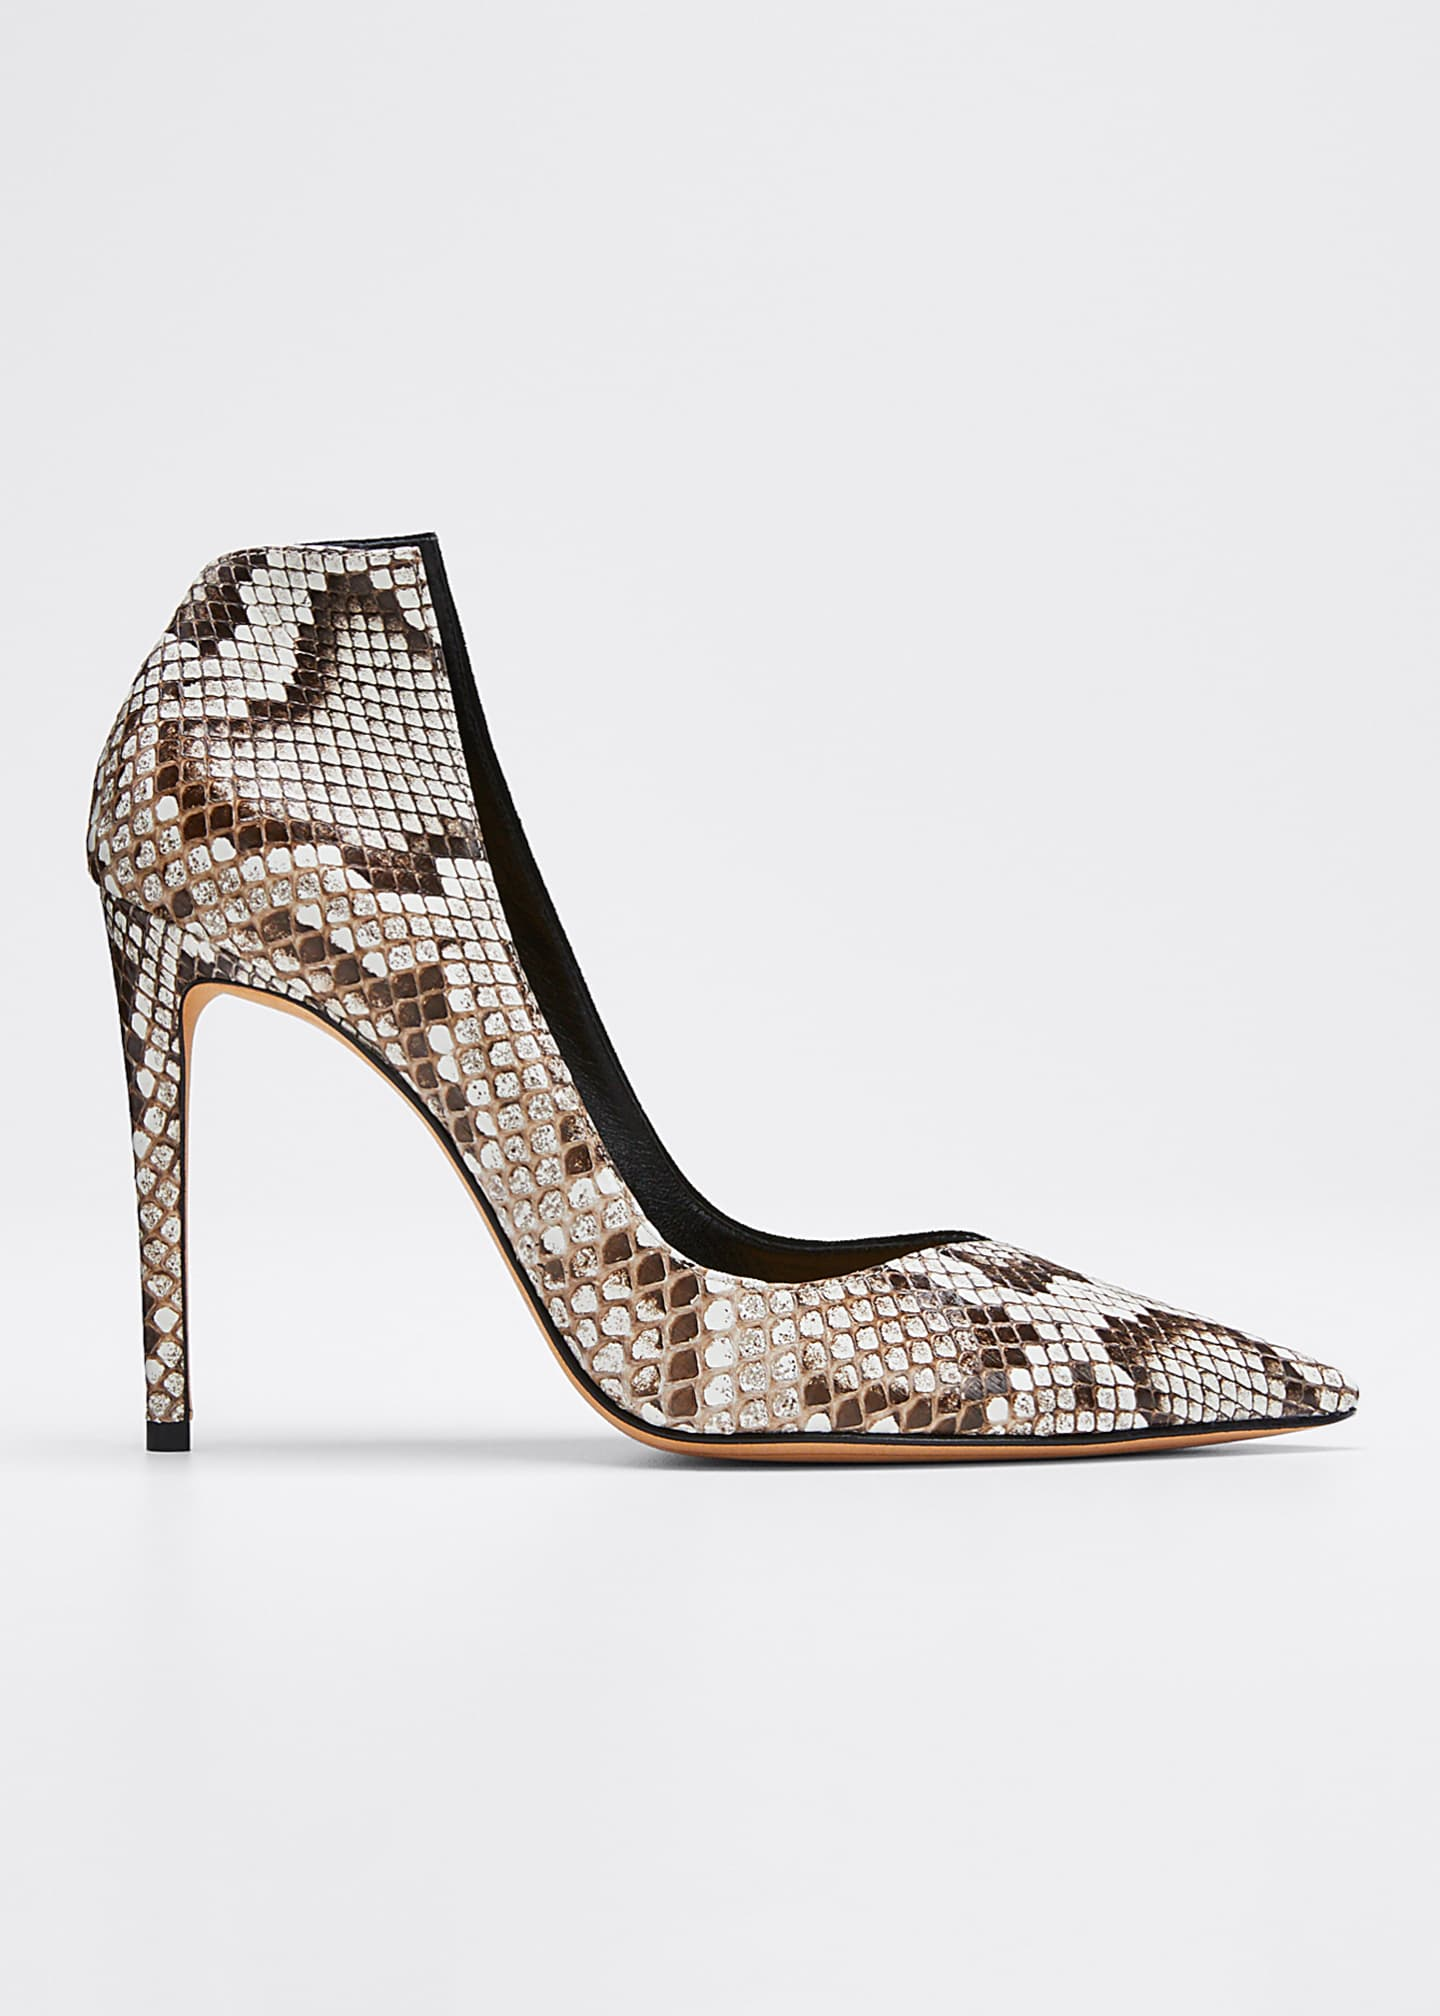 Alexandre Birman Megan Python and Suede High Pumps